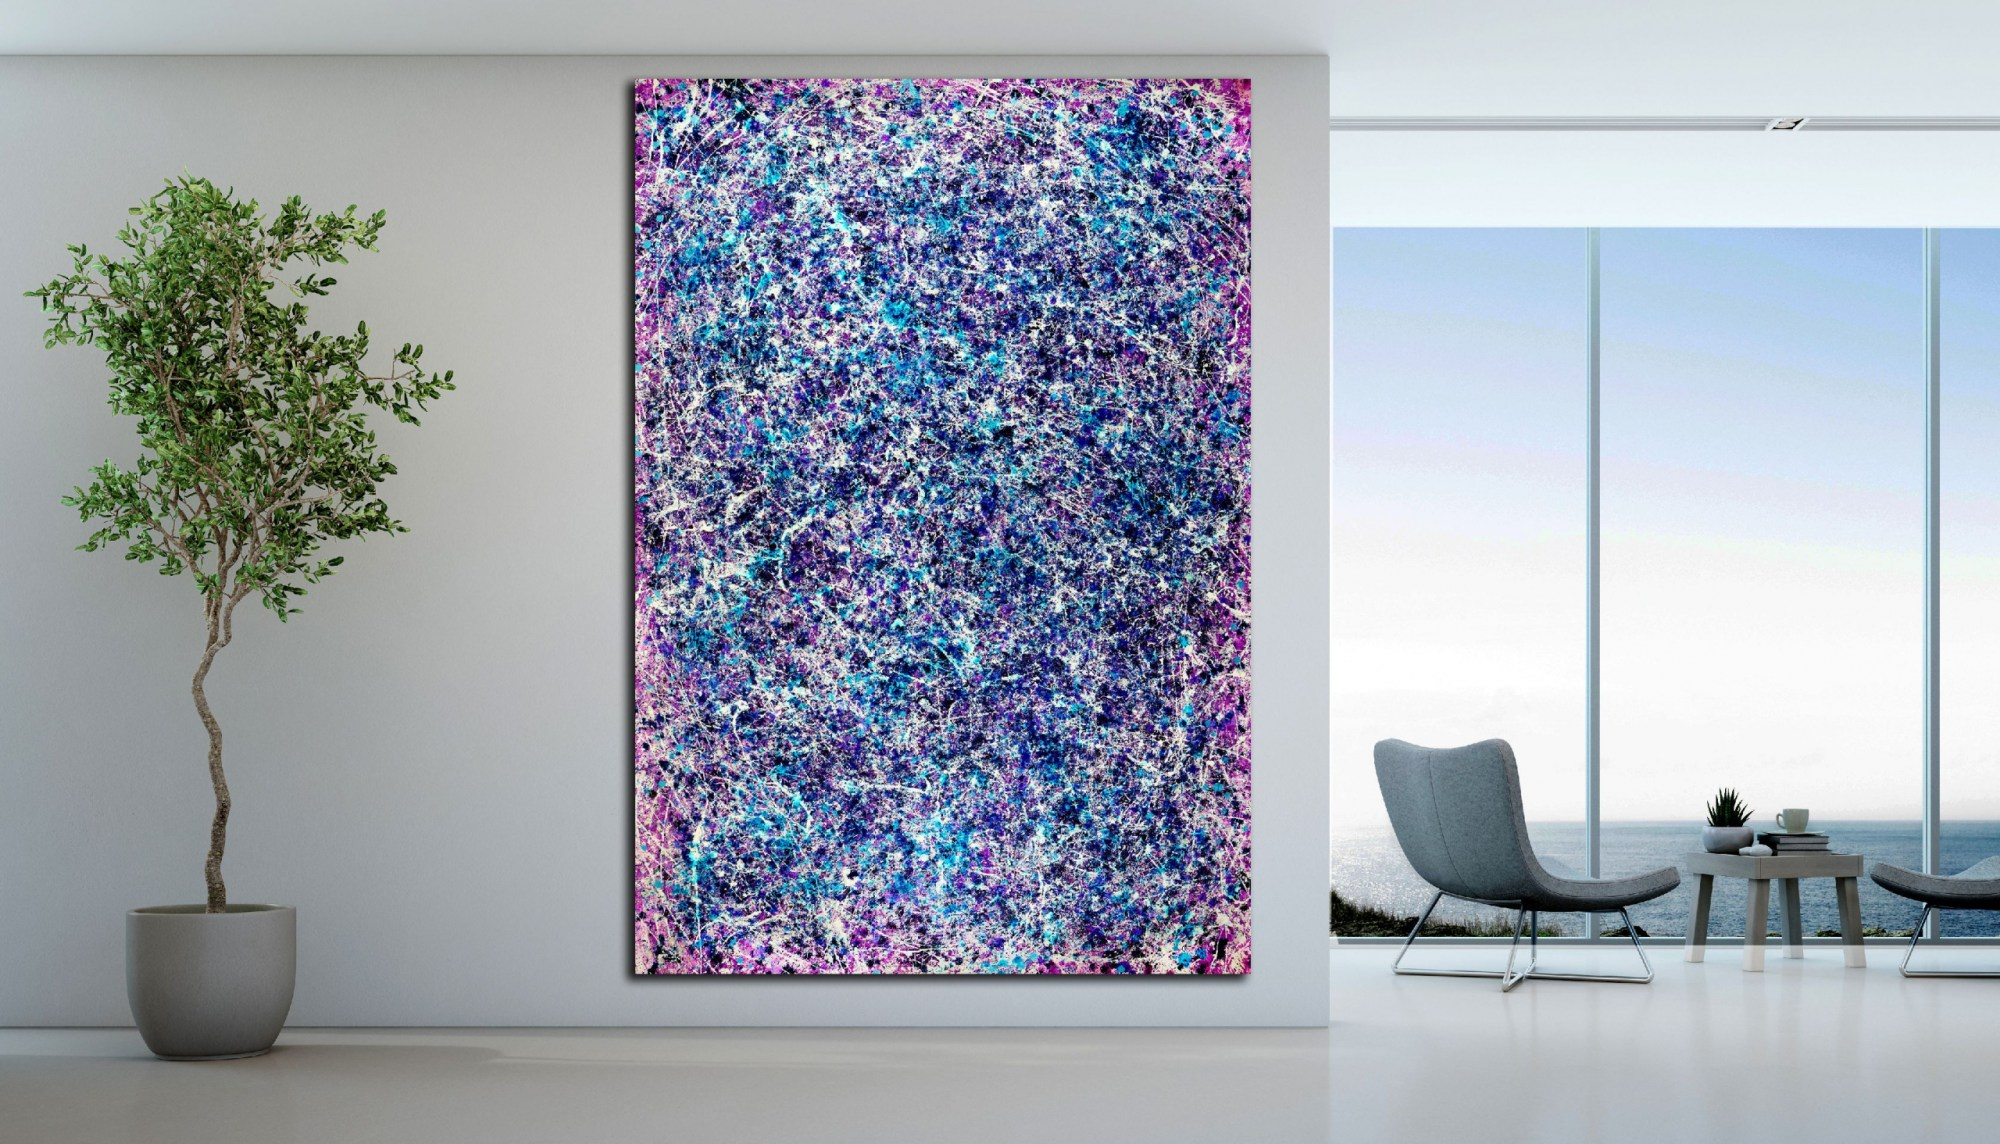 Room View - Blue Display of Affection (Silver stars) (2020) by Nestor Toro